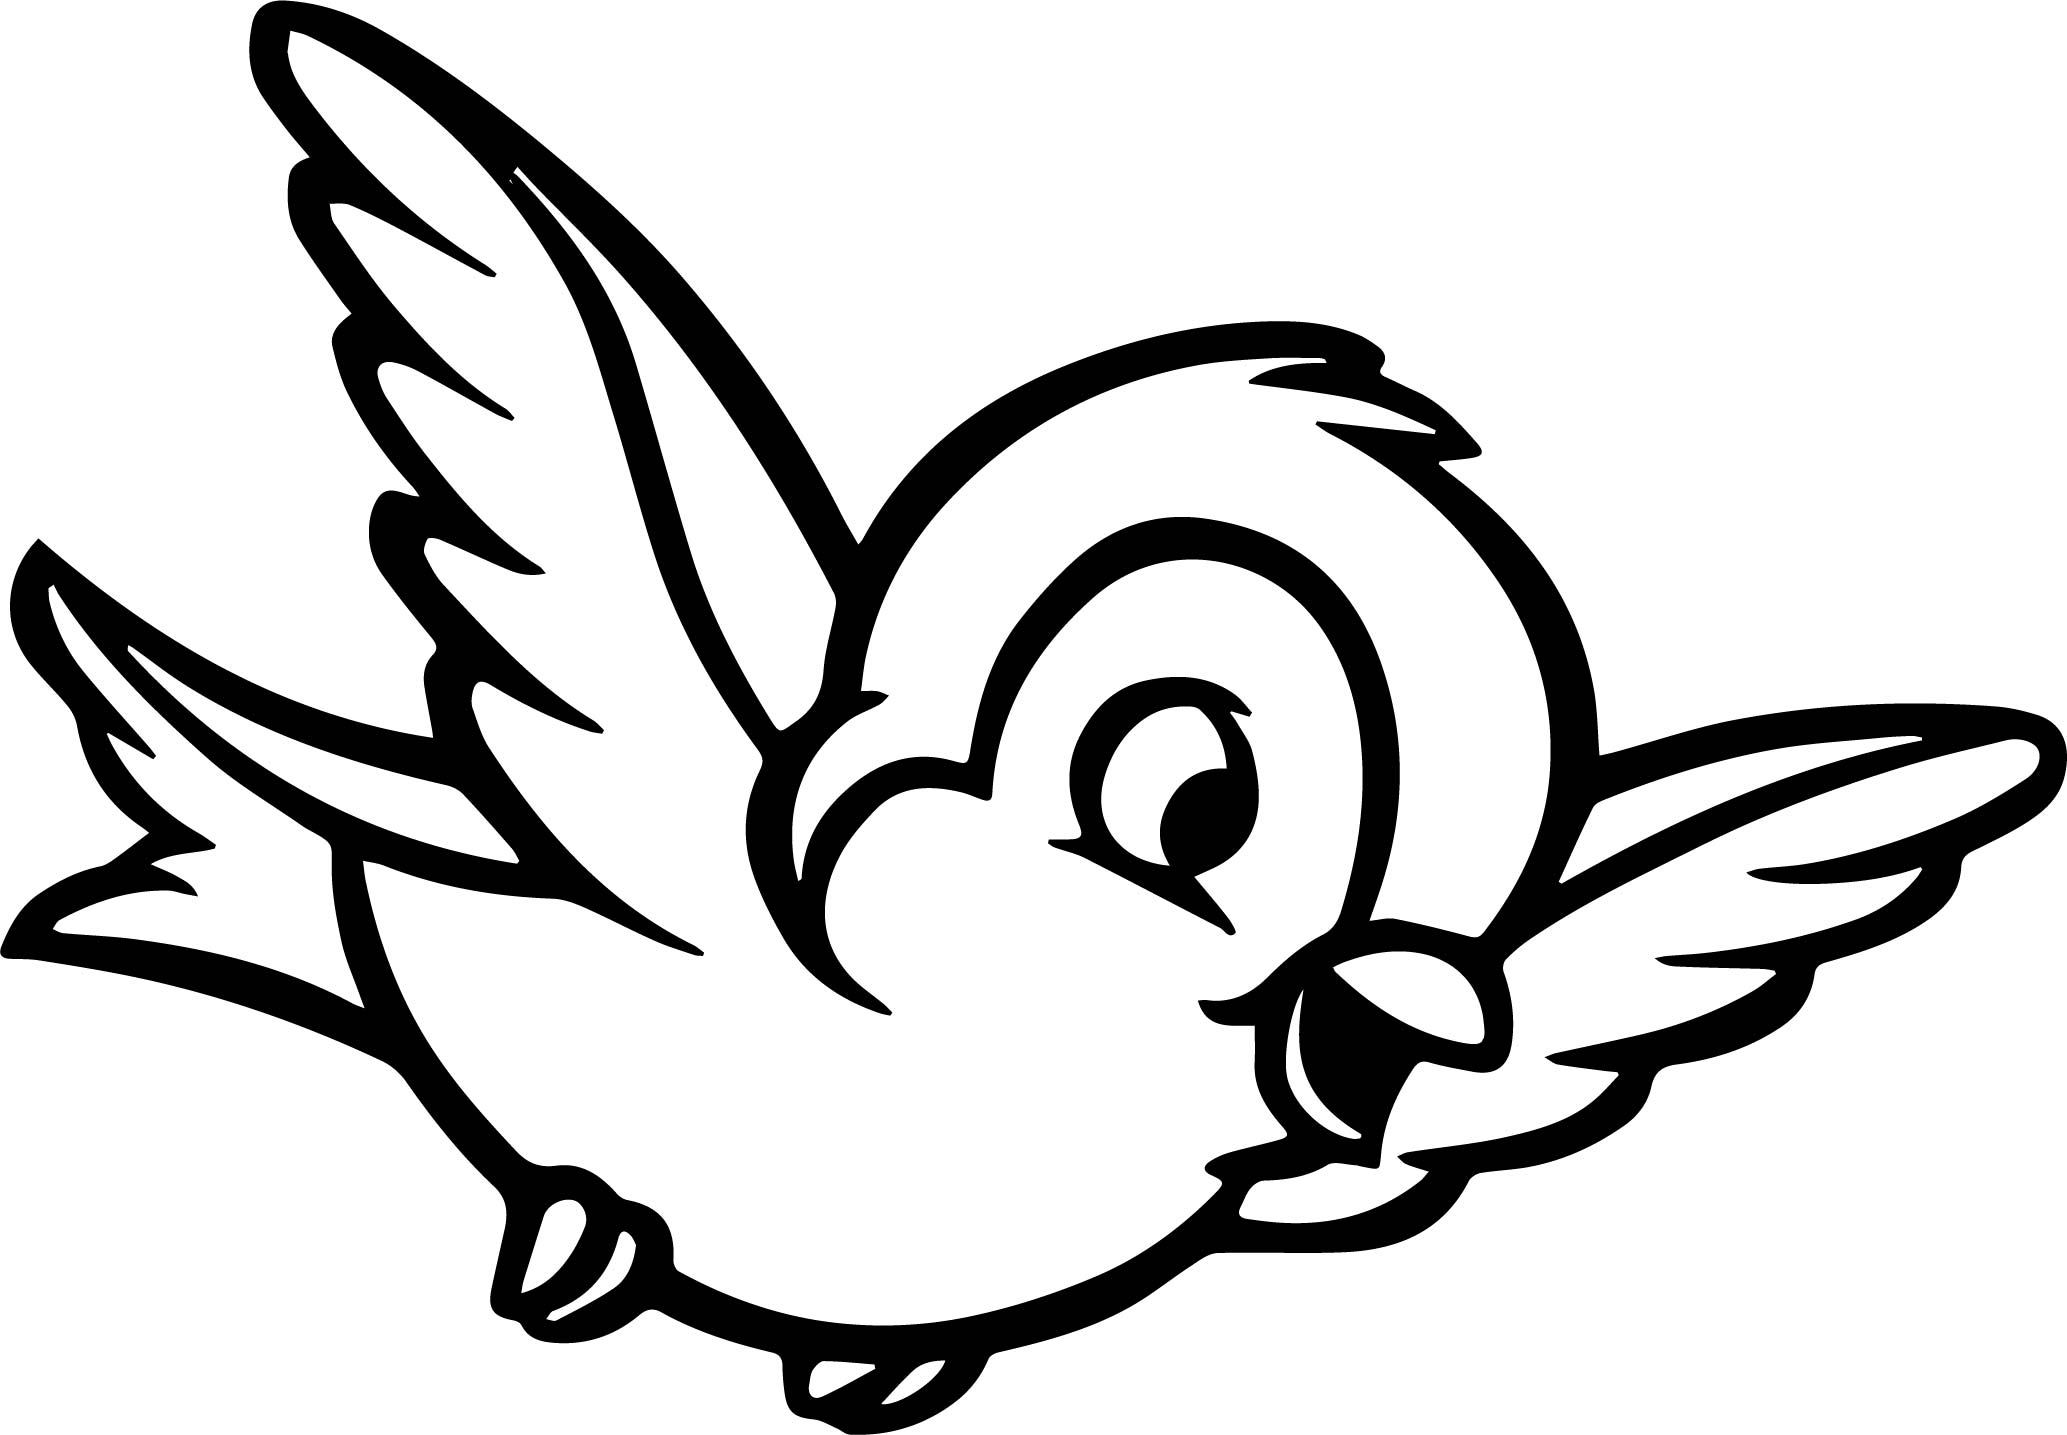 Flying Bird Coloring Pages - GetColoringPages.com | 1333x1920